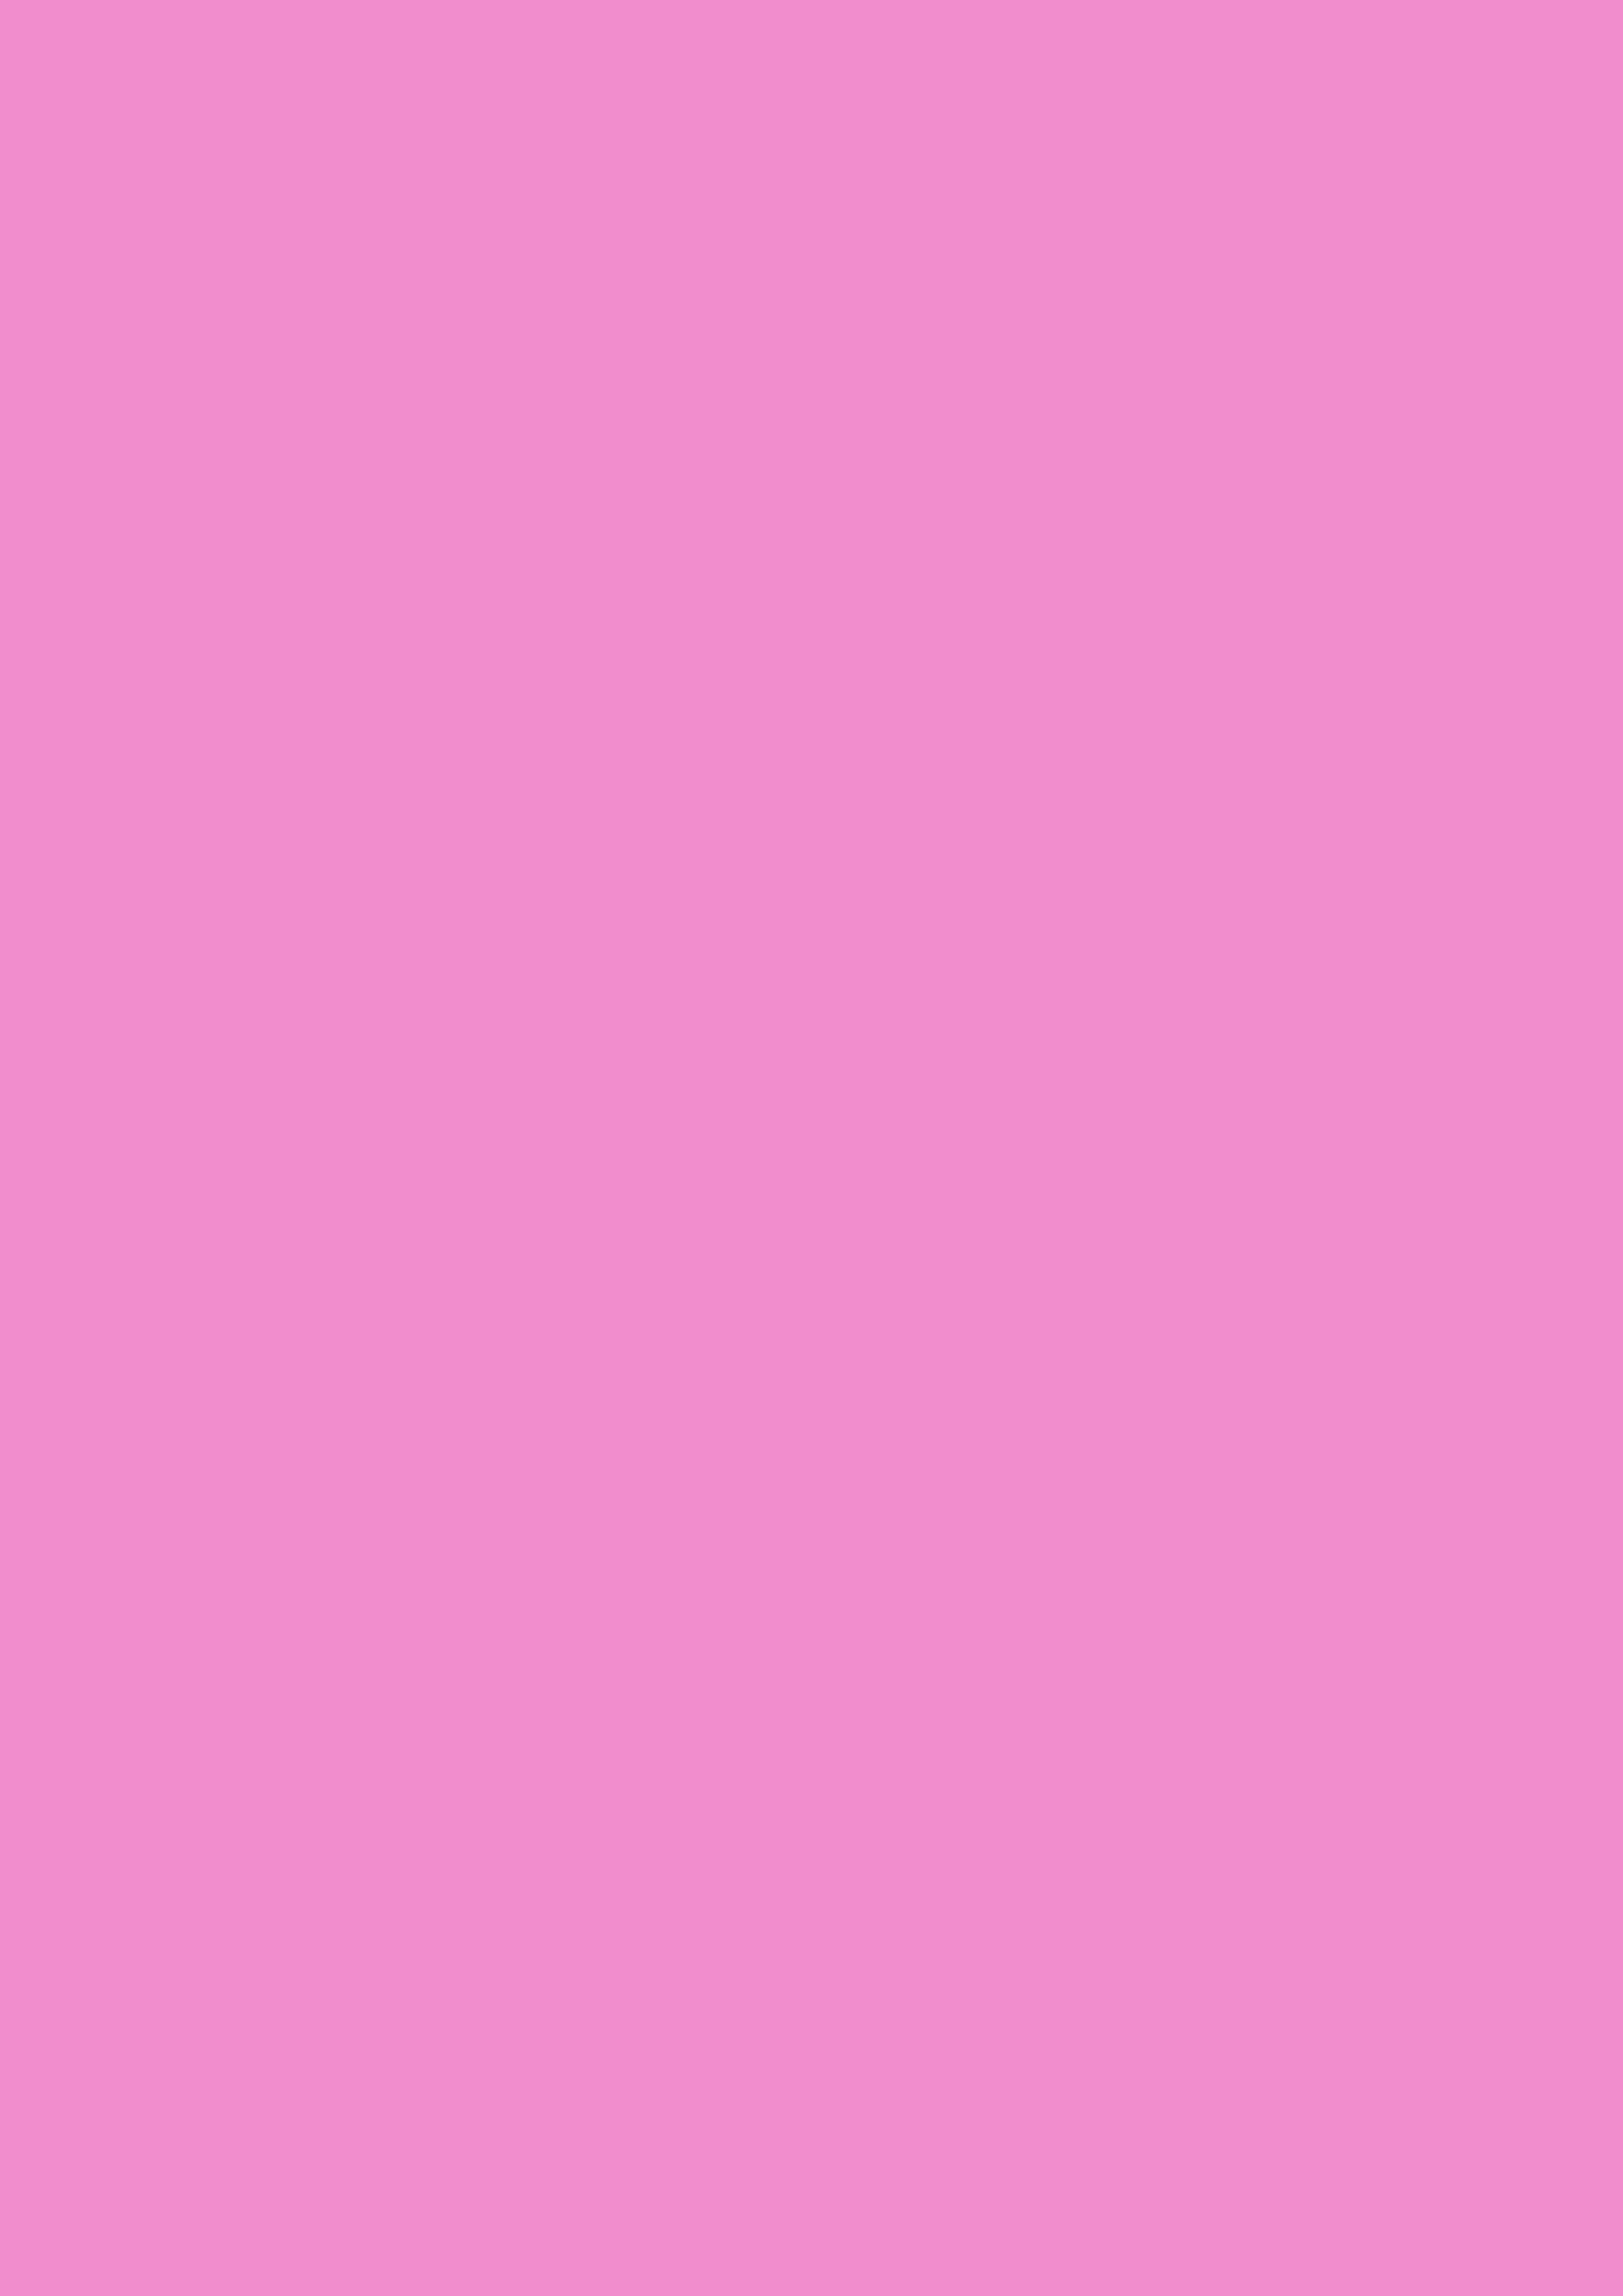 2480x3508 Orchid Pink Solid Color Background